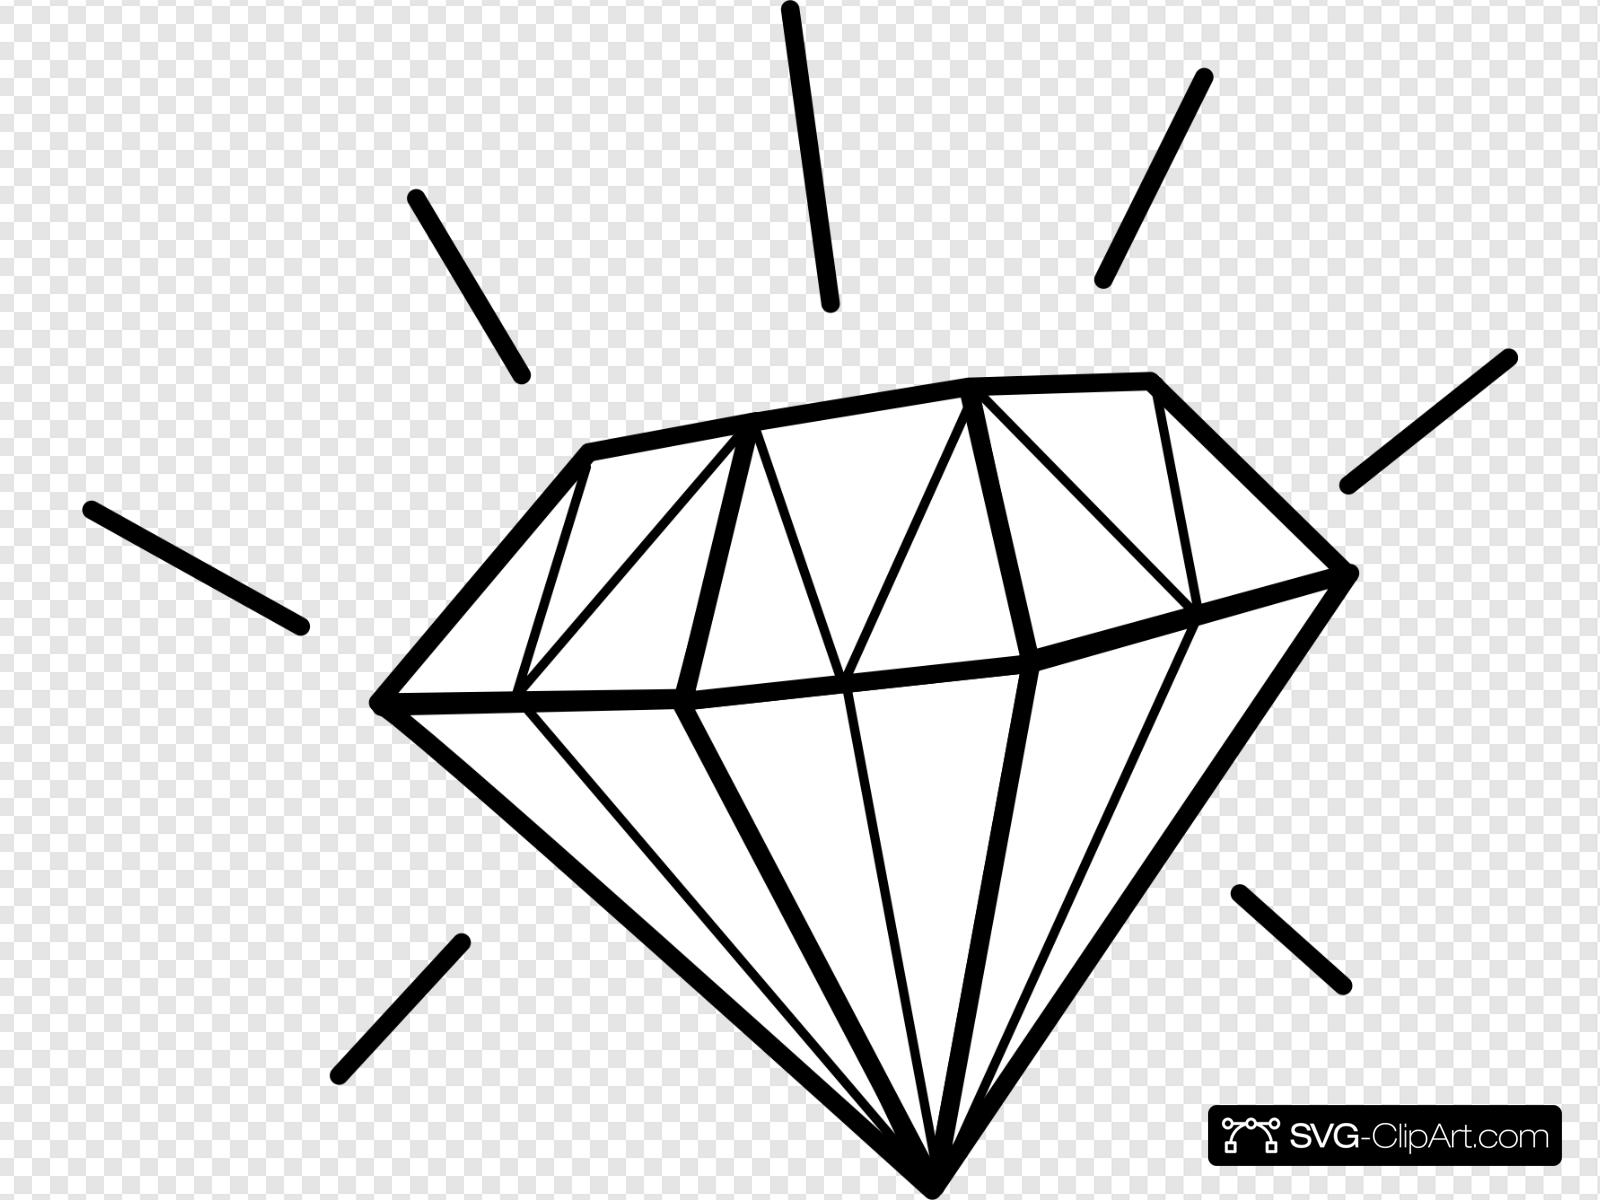 Diamonds clipart svg.